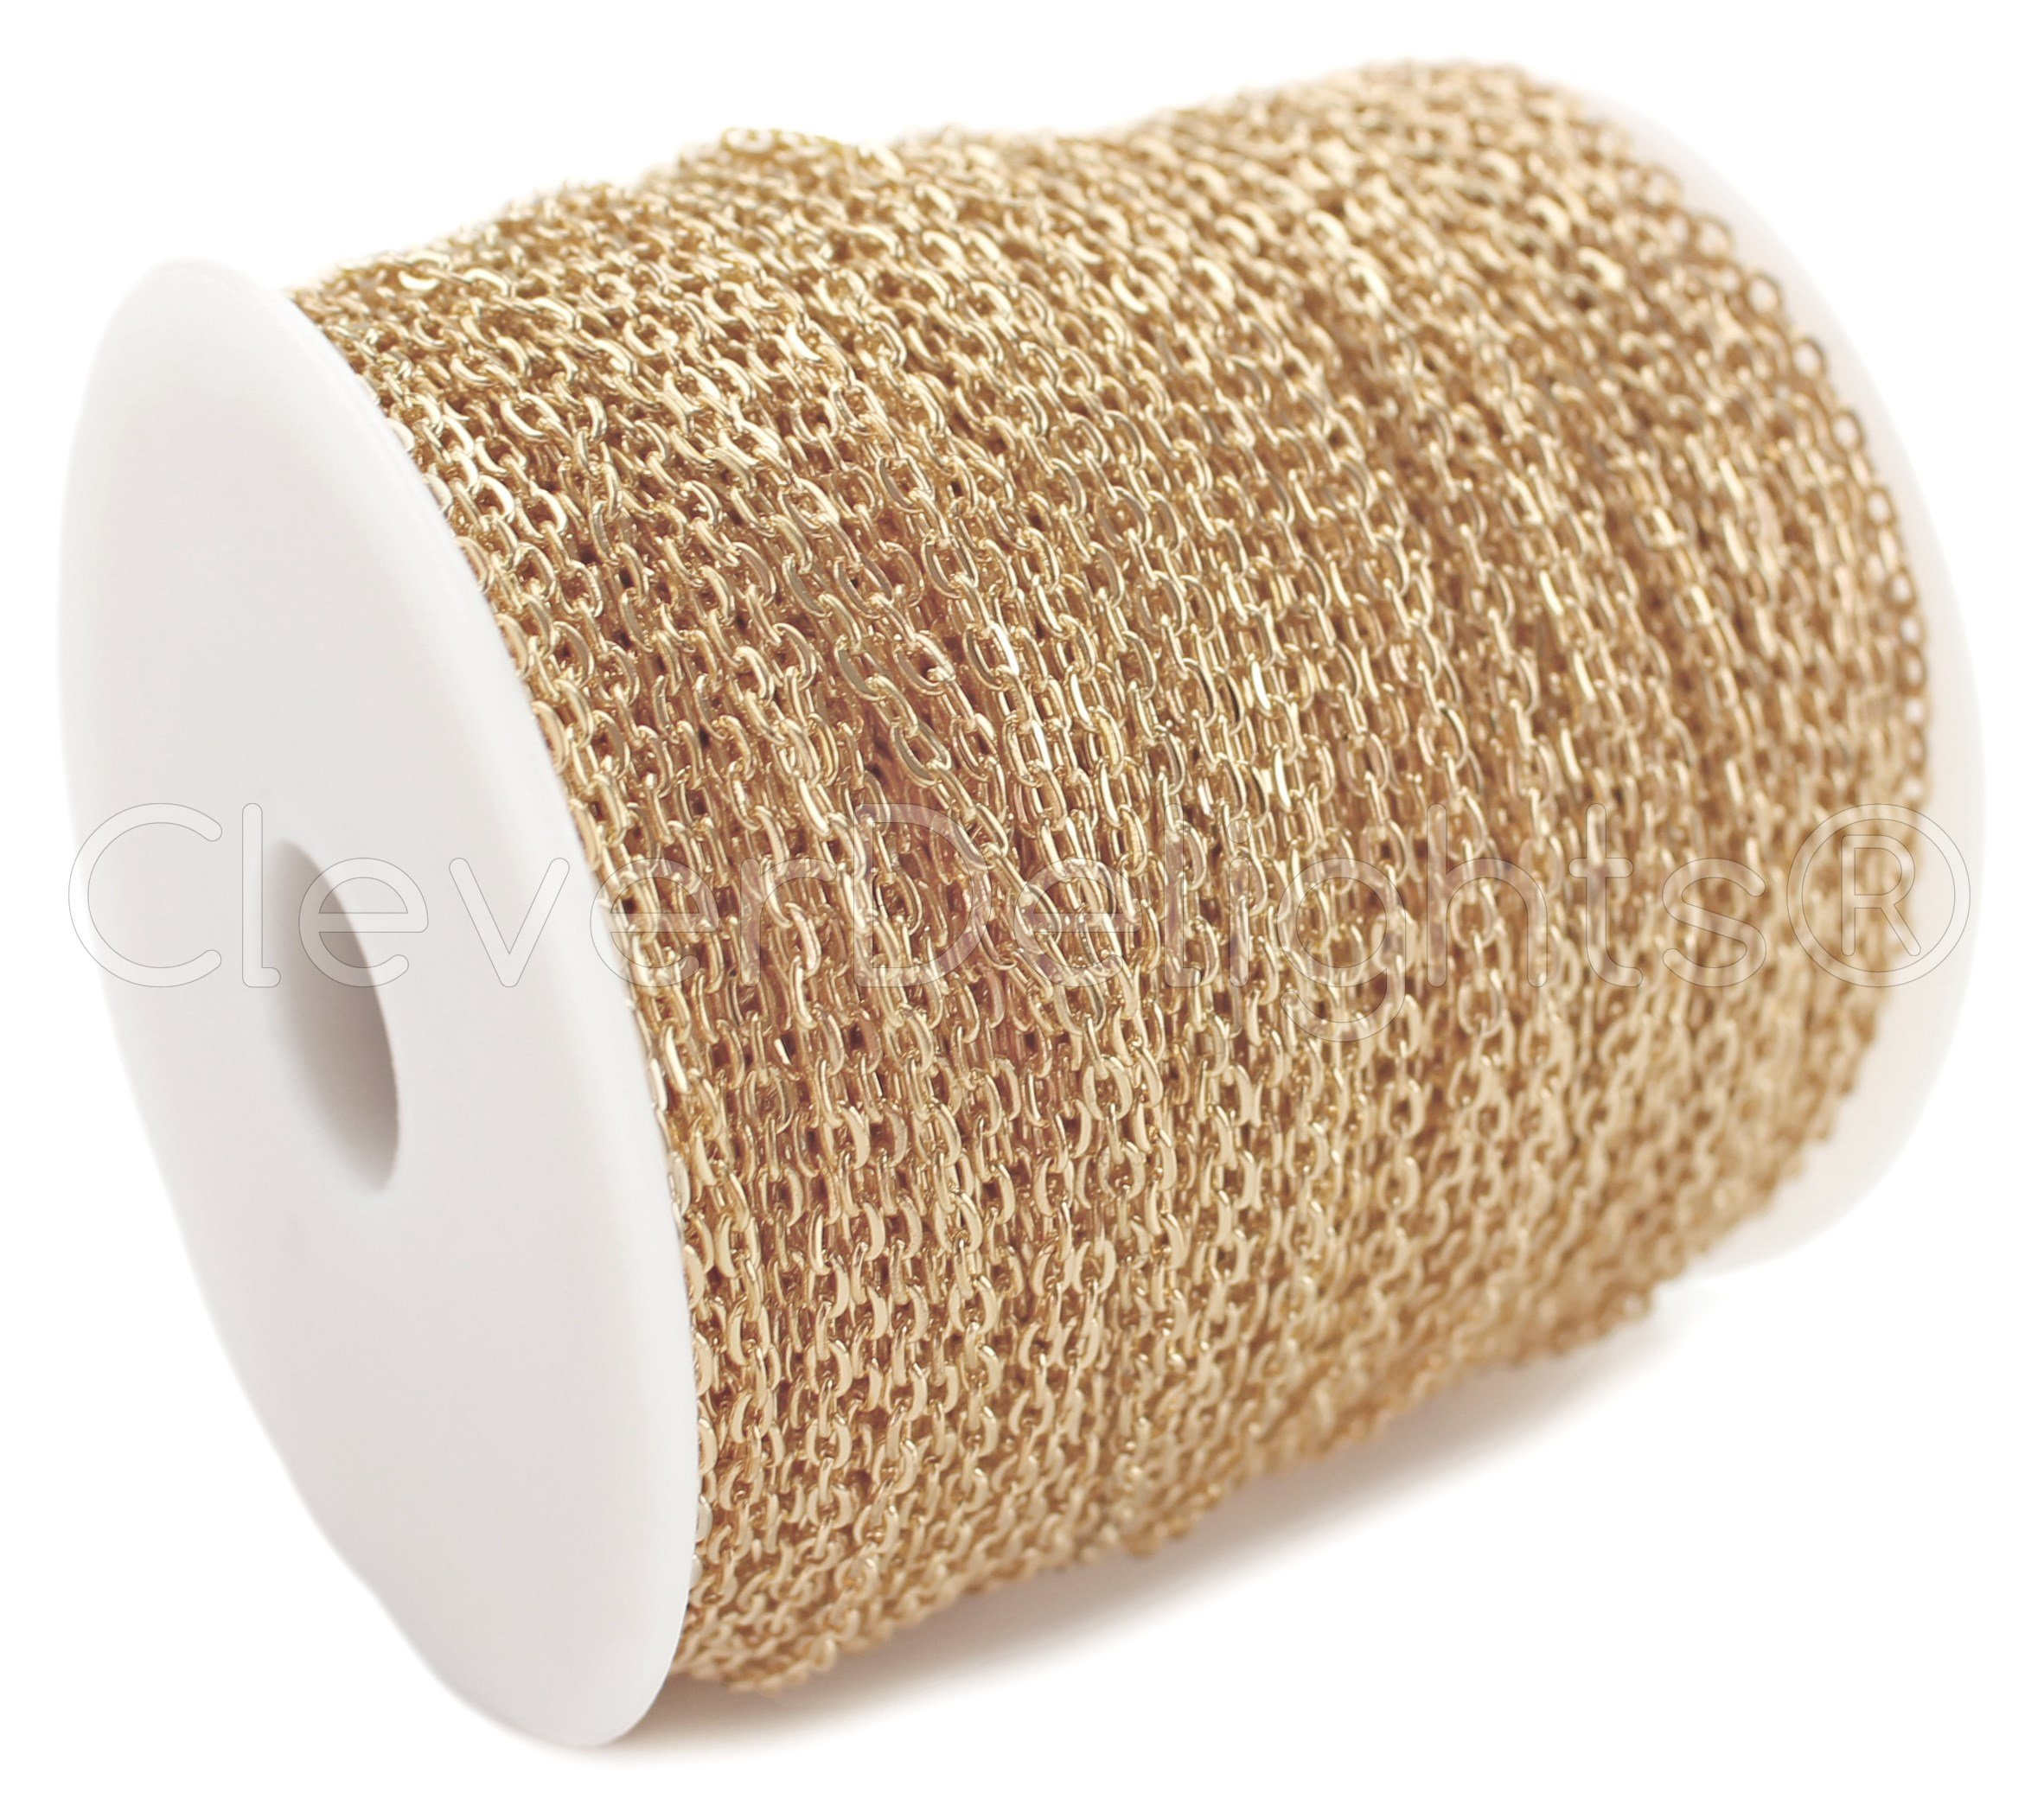 CleverDelights Cable Chain Spool - 330 Feet - Champagne Gold Color - 2x3mm Link - 100 Meters - Bulk Chain by CleverDelights